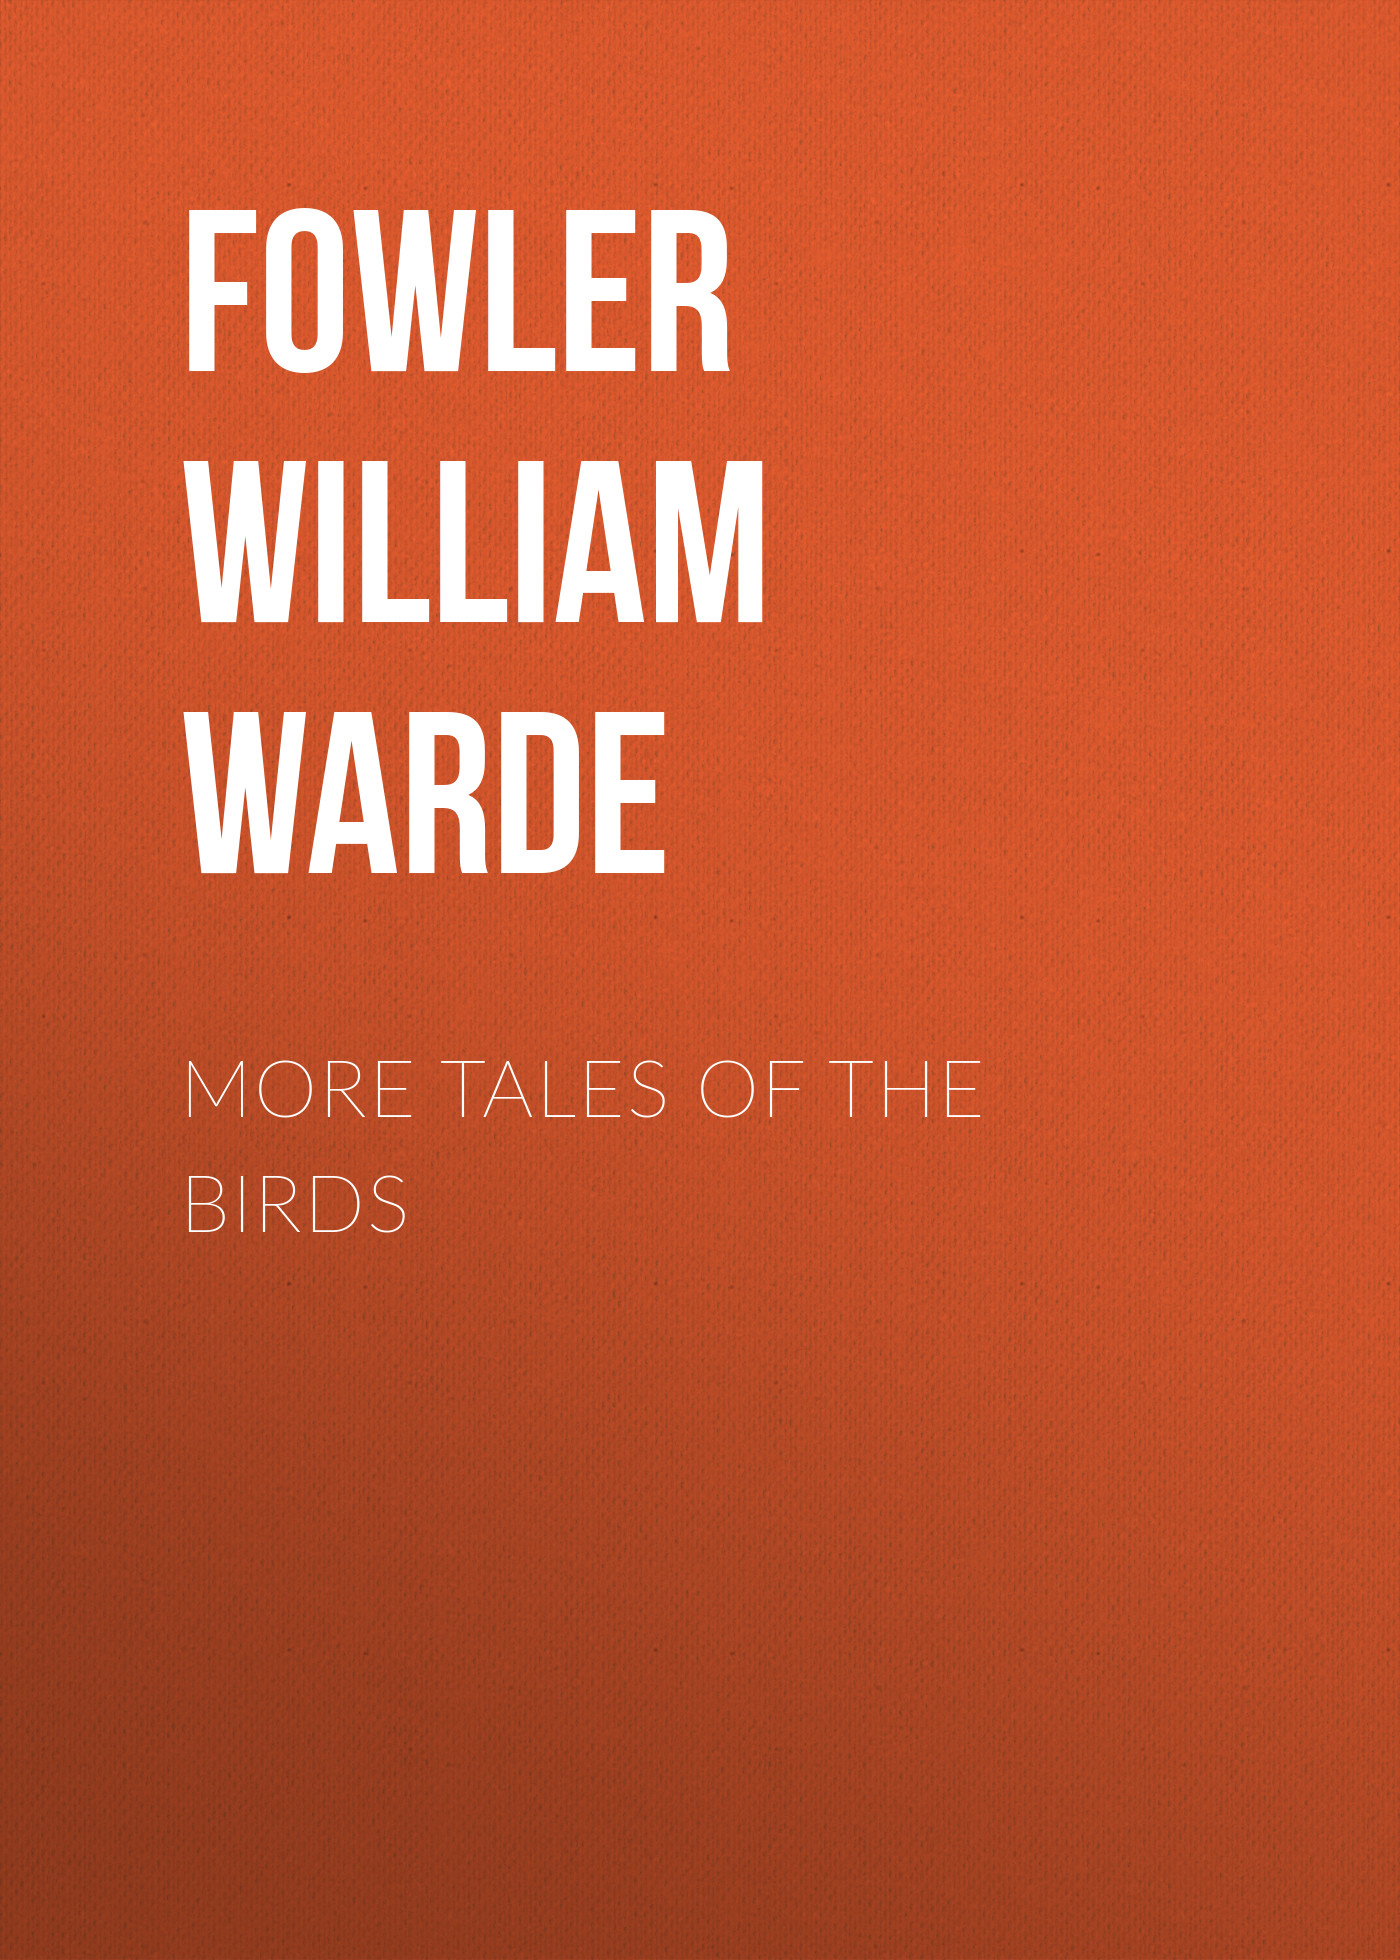 Фото - Fowler William Warde More Tales of the Birds lld william chauncey fowler local law in massachusetts and connecticut historically considered